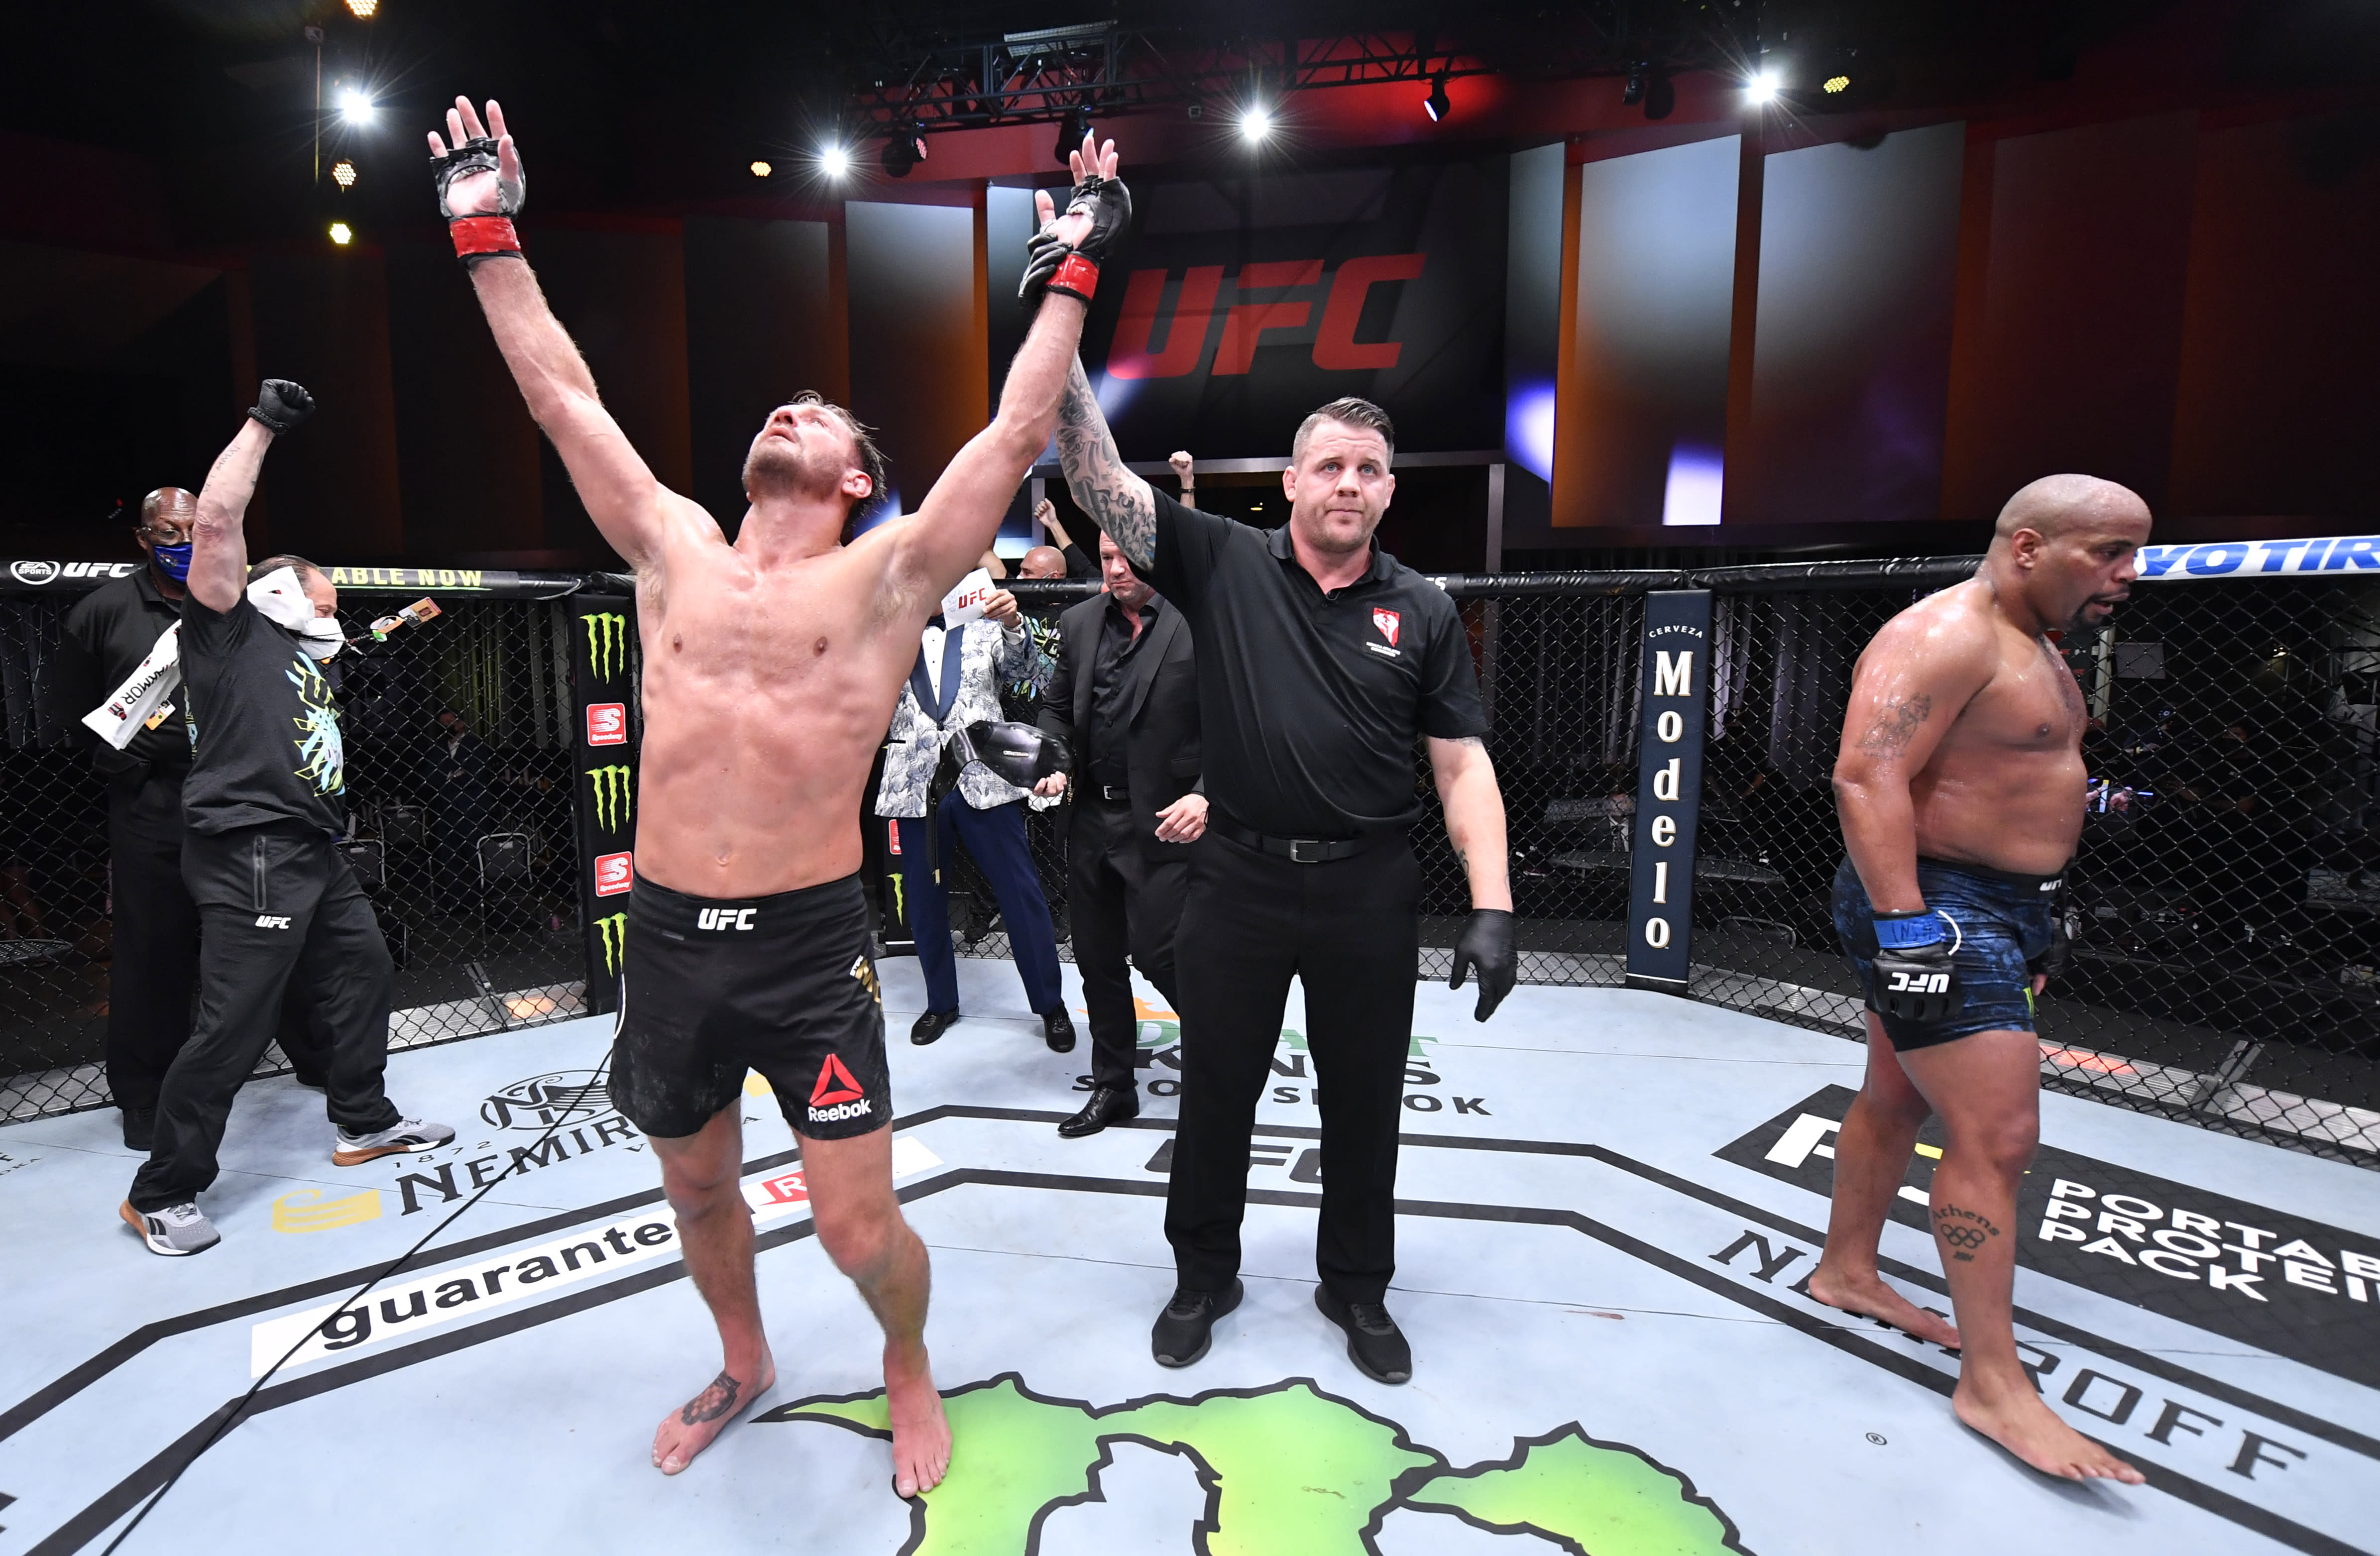 Cormier is great, but Miocic is the greatest